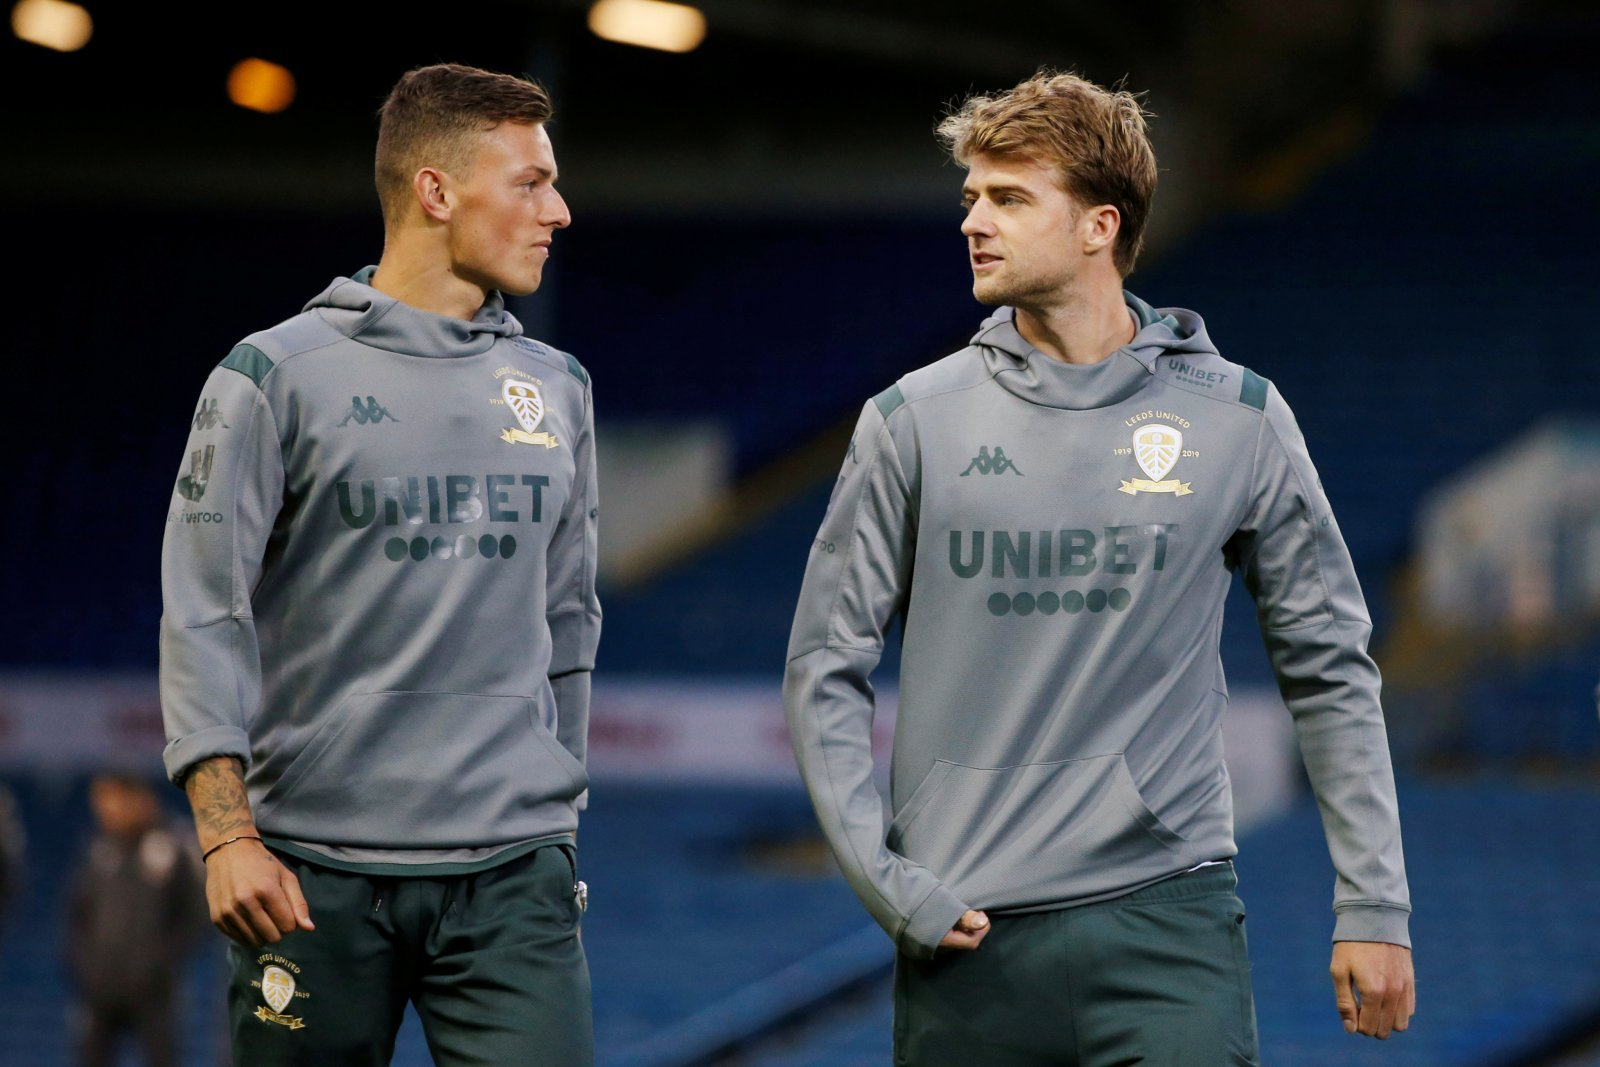 Leeds United: Brighton & Hove Albion 'staggered' by Ben White's progress under Marcelo Bielsa